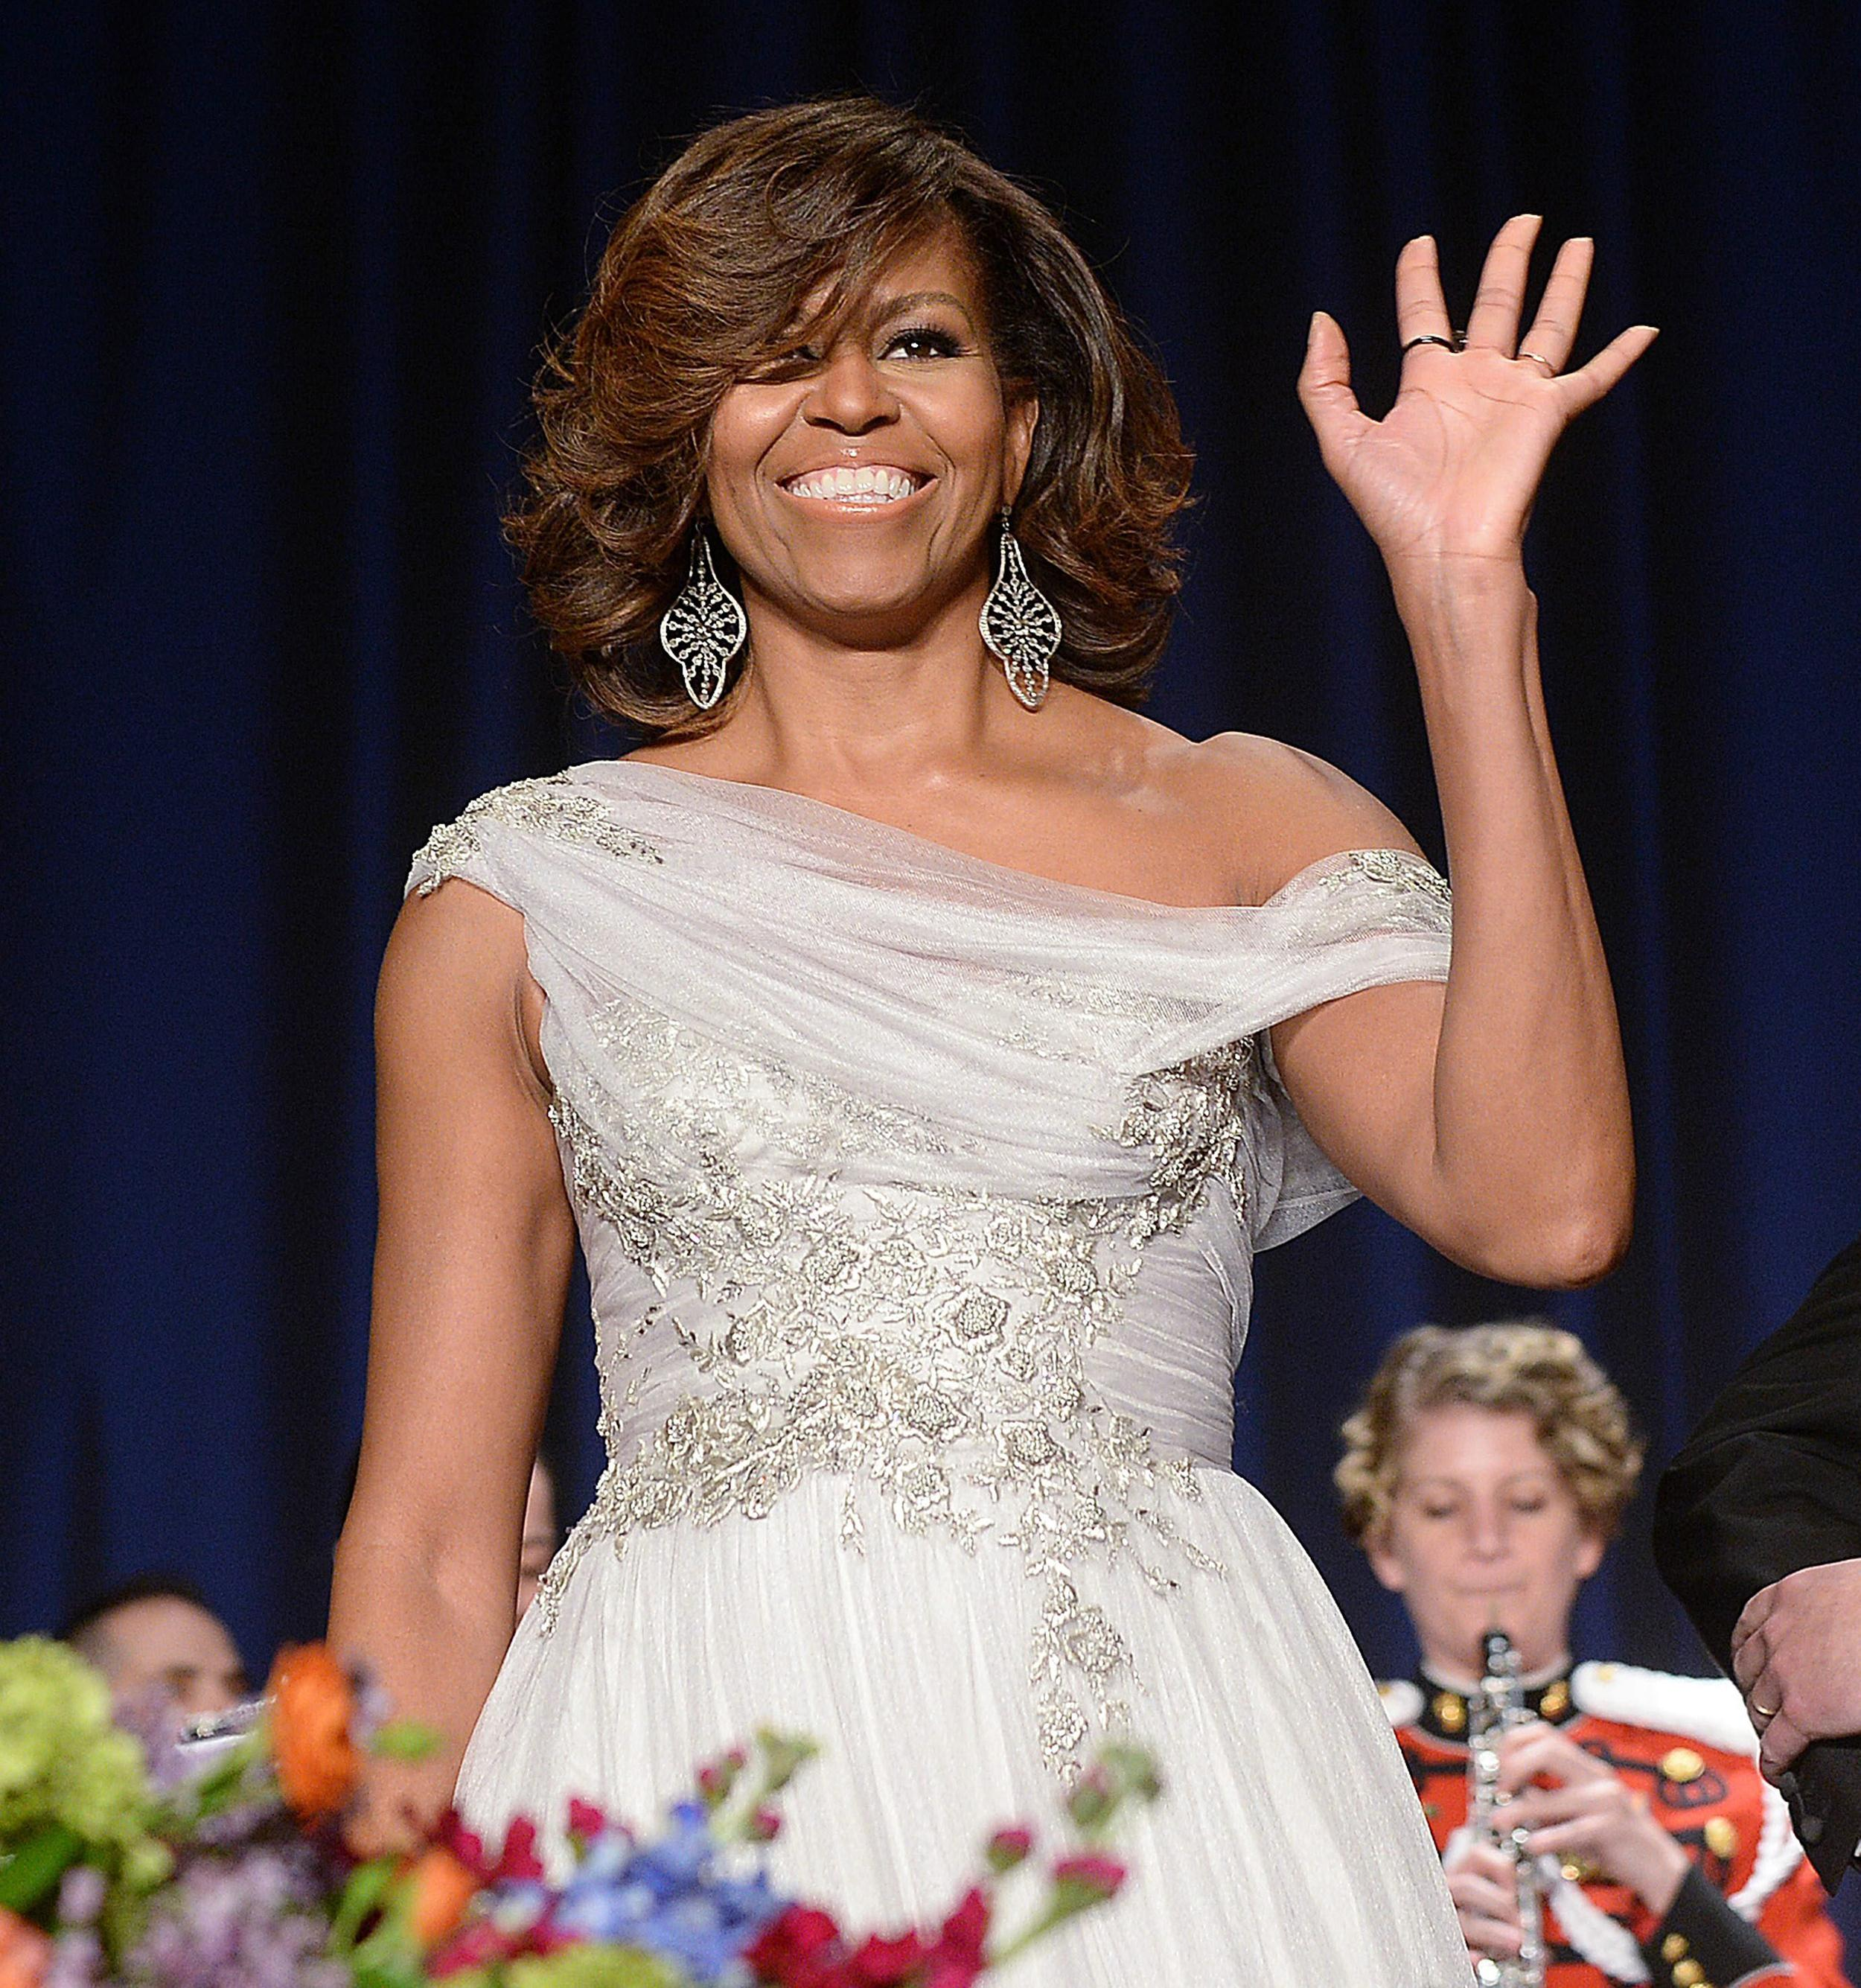 FLOTUS Approved: Thumbs-Up At White House Correspondents